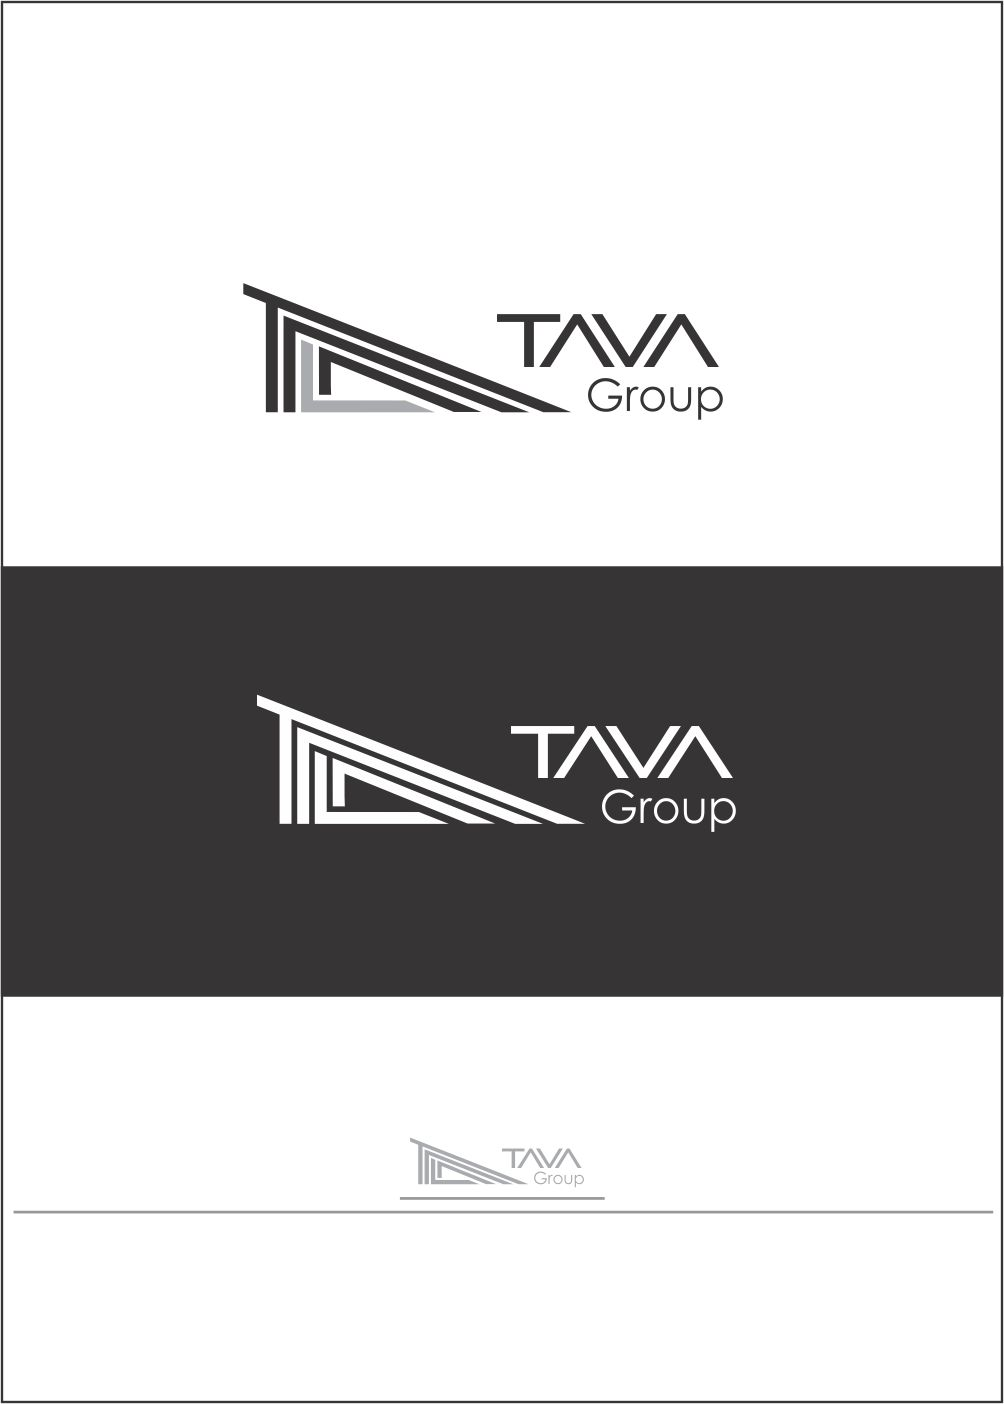 Logo Design by ian69 - Entry No. 304 in the Logo Design Contest Creative Logo Design for Tava Group.